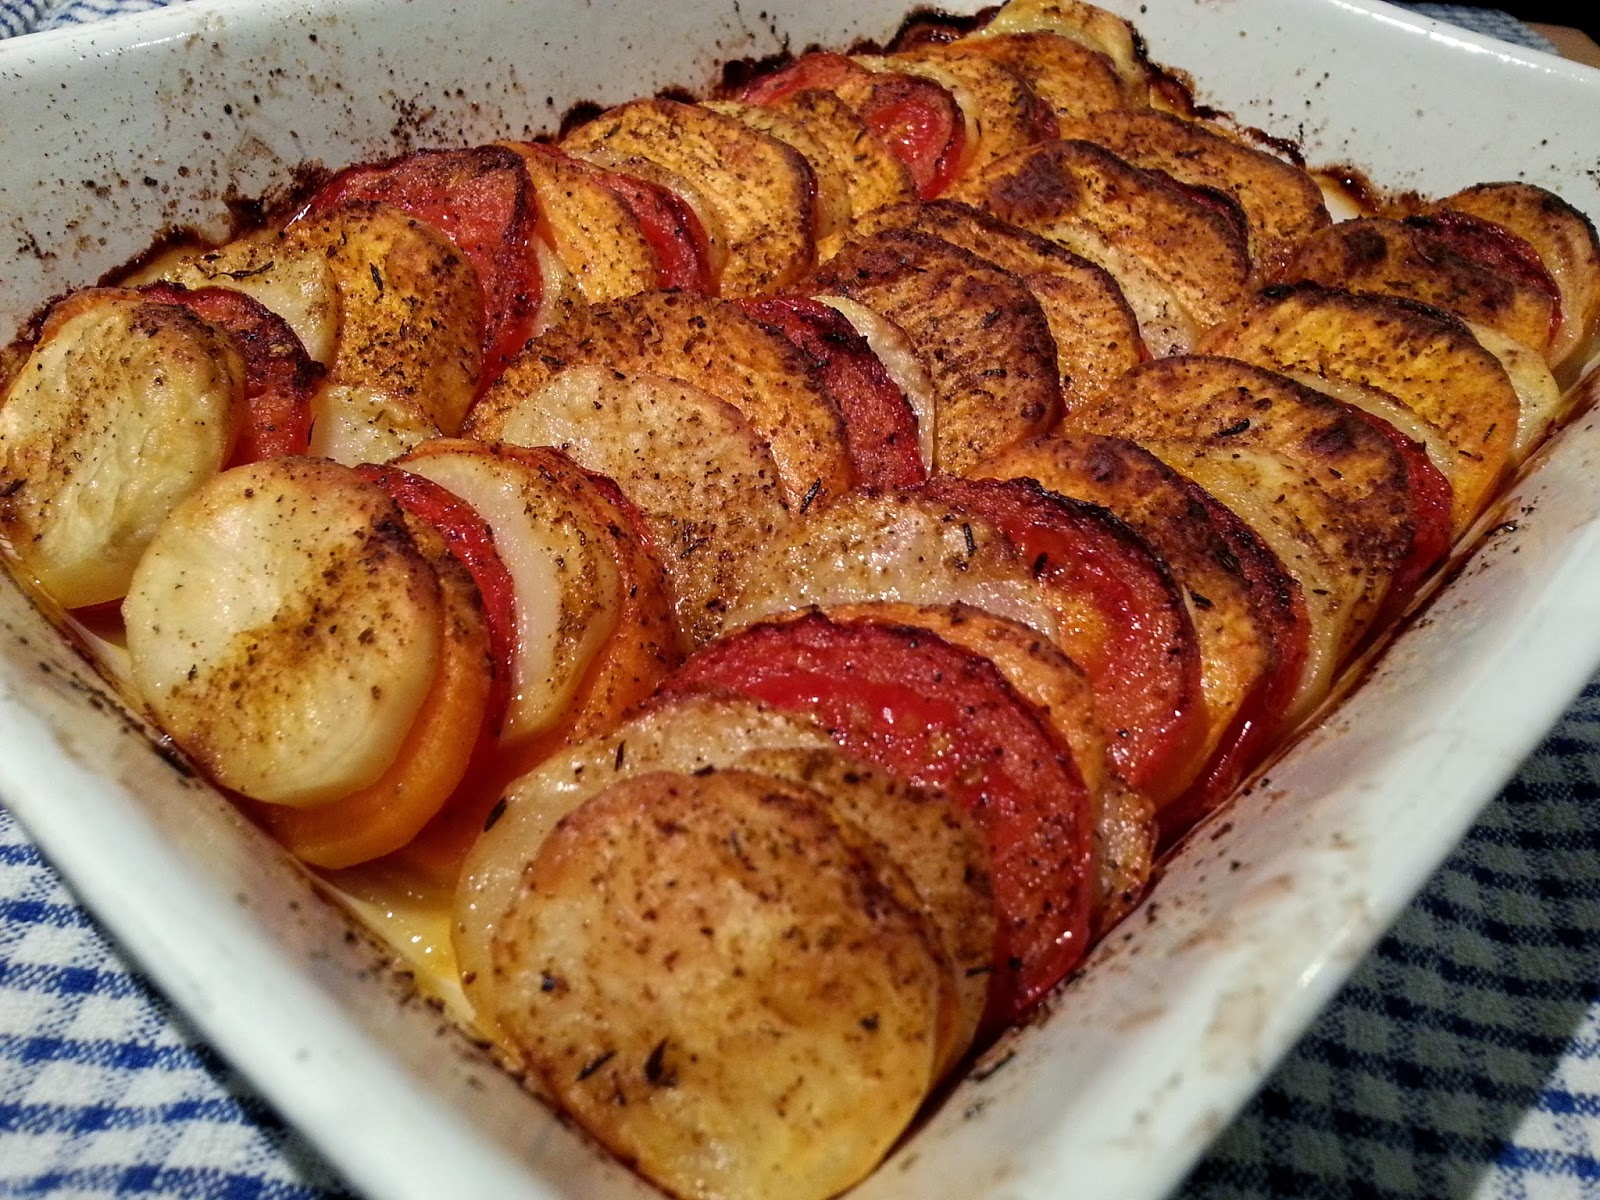 Slimming world delights sweet potato tomato and potato bake for Side dishes for baked fish